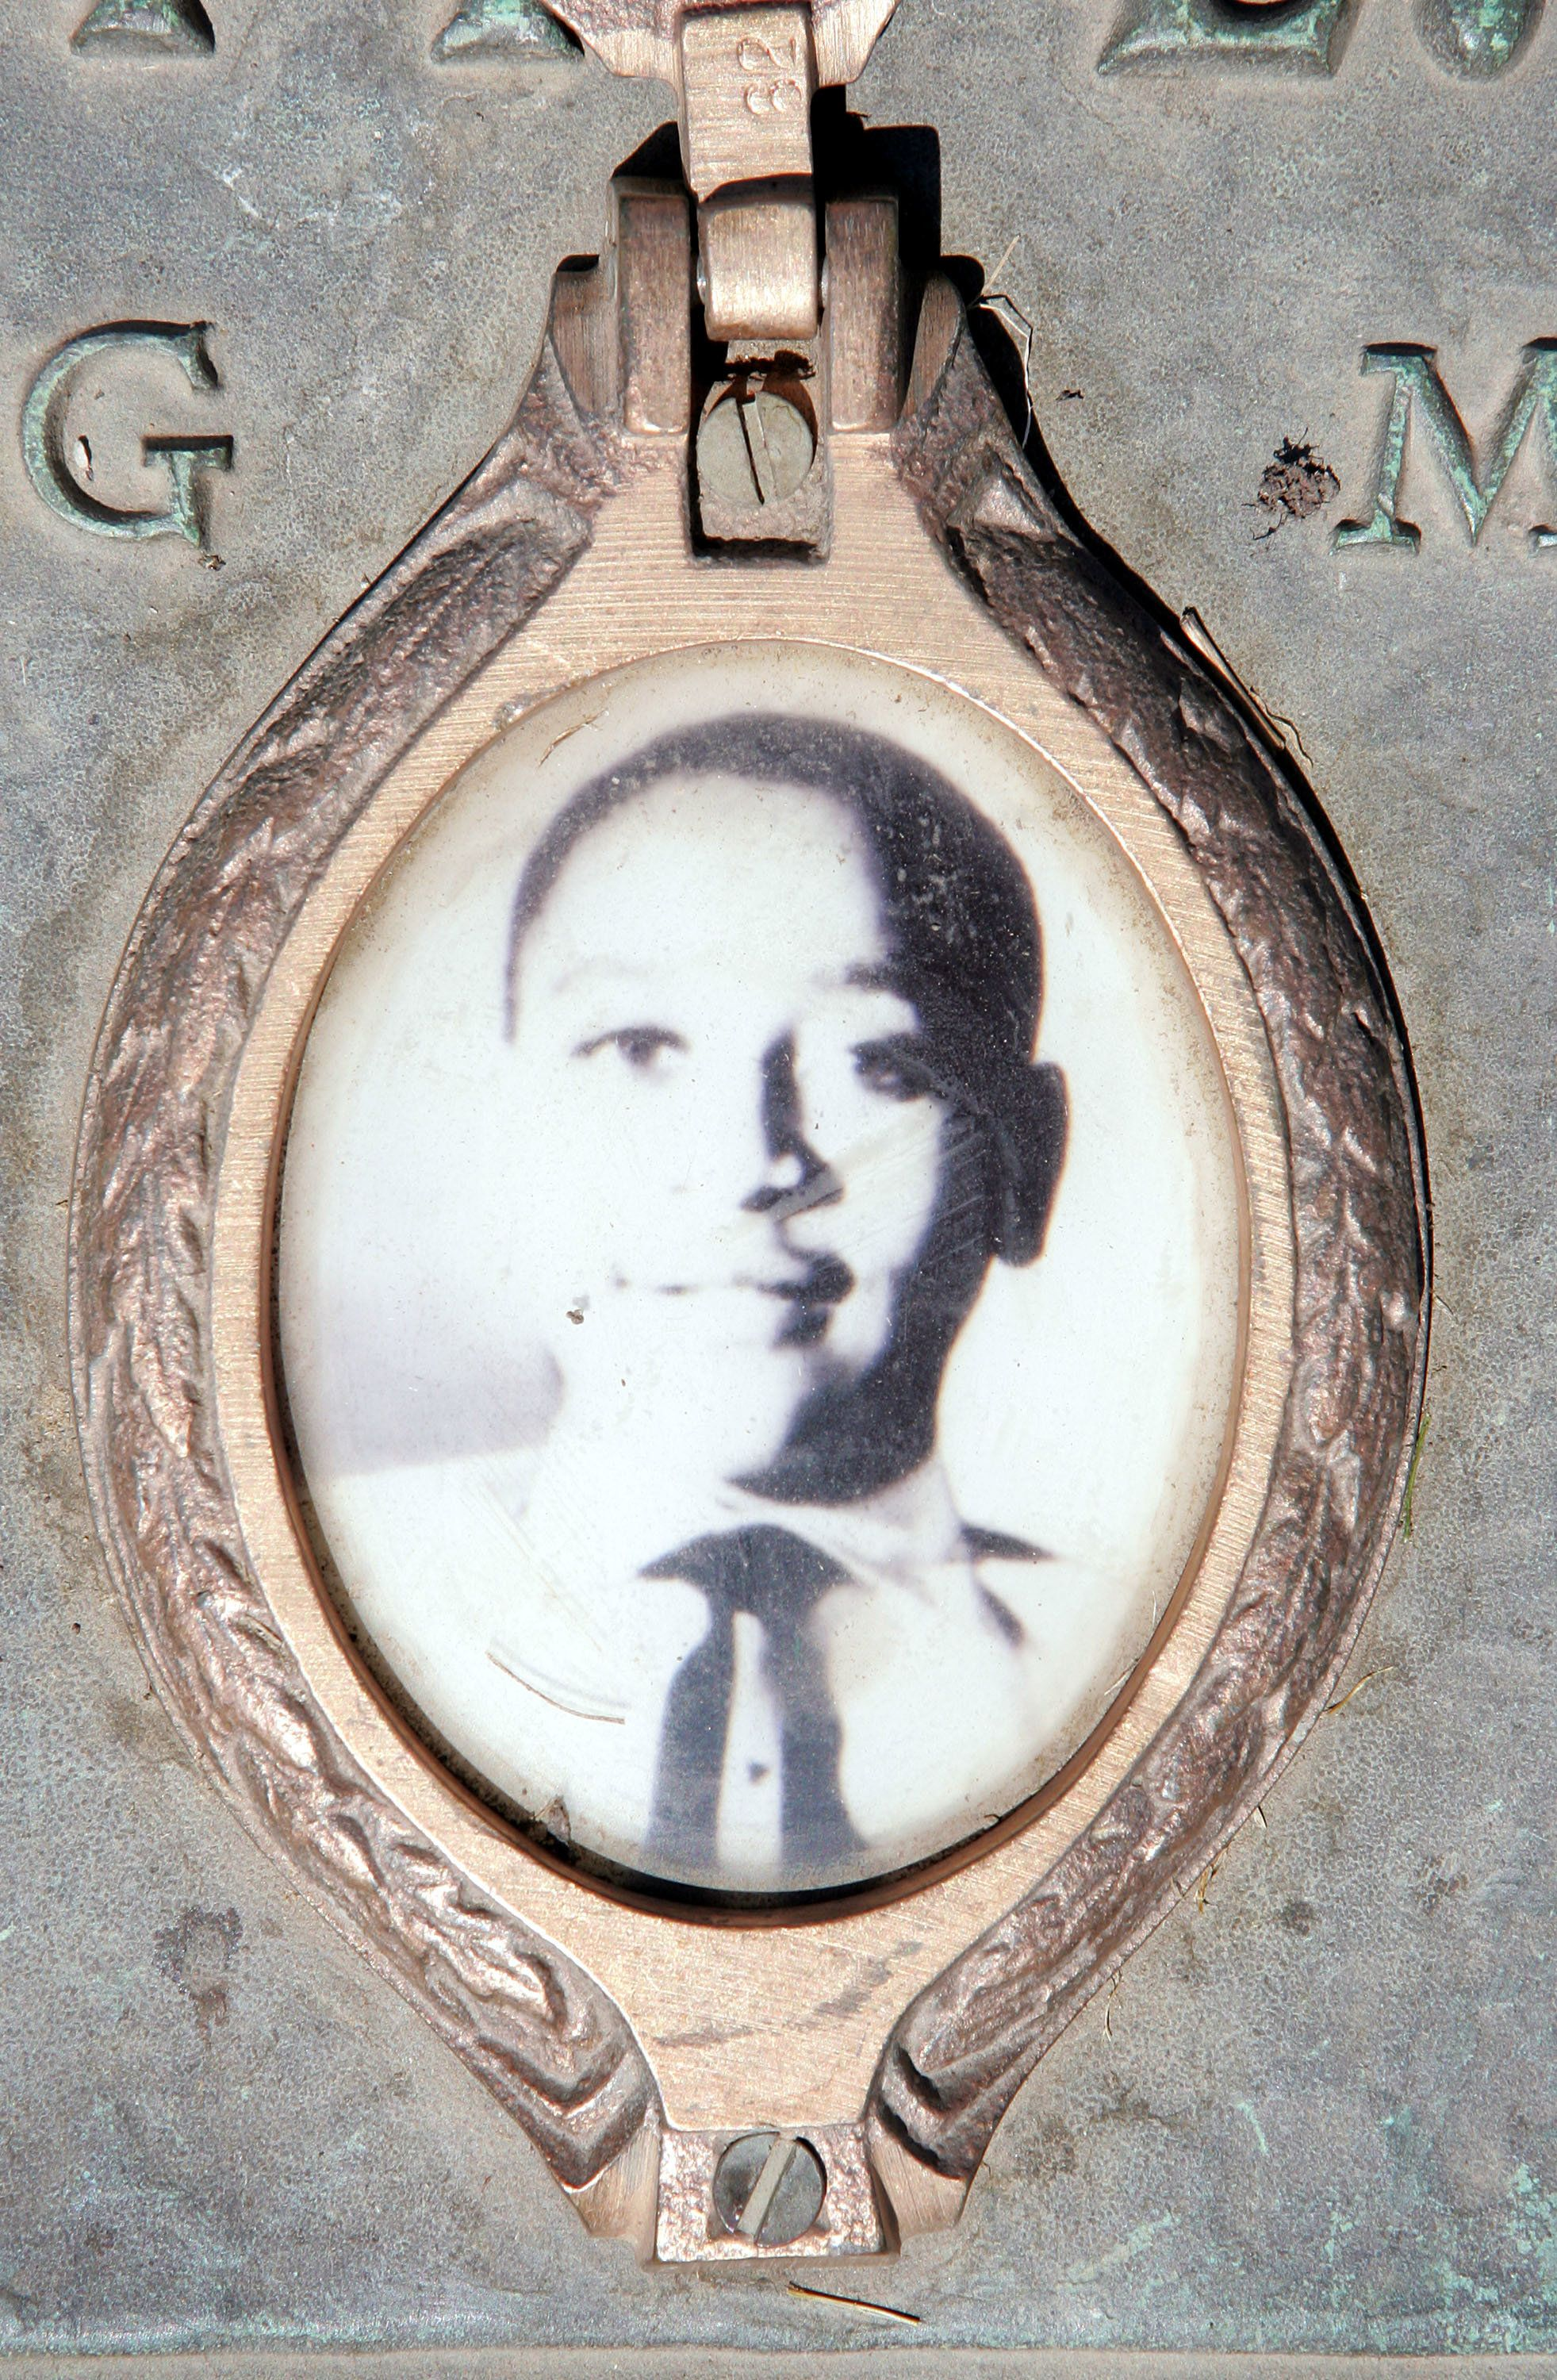 ALSIP, IL - MAY 4:  A photo of Emmett Till is included on the plaque that marks his gravesite at Burr Oak Cemetery May 4, 2005 in Aslip, Illinois. The FBI is considering exhuming the body of Till, whose unsolved 1955 murder in Money, Mississippi, after whistling at a white woman helped spark the U.S. civil rights movement.  (Photo by Scott Olson/Getty Images)